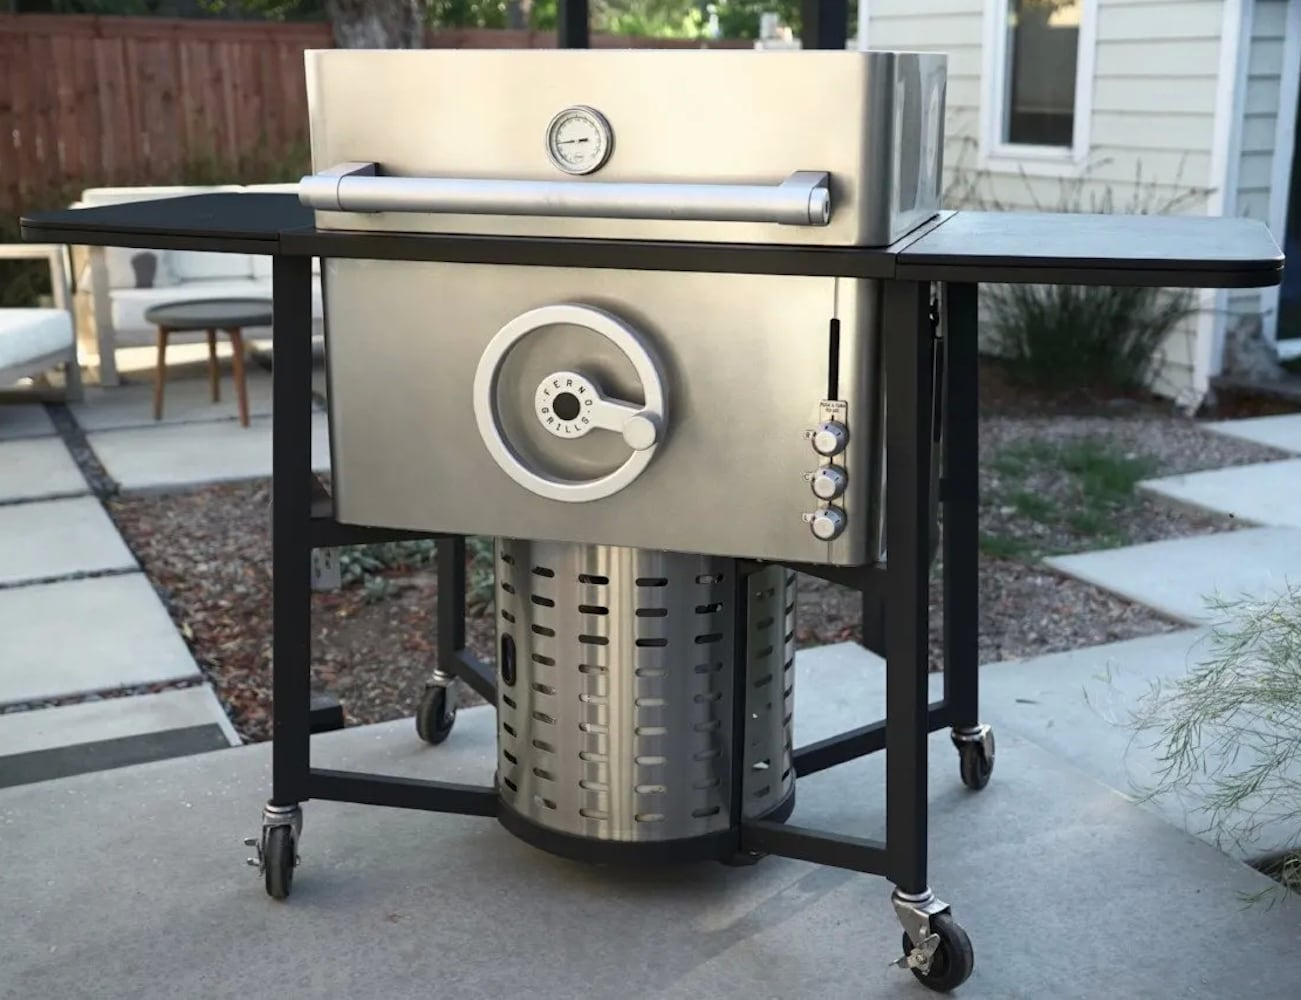 Ferno FreeStanding Grill lets you precisely control the temperature for great grilling